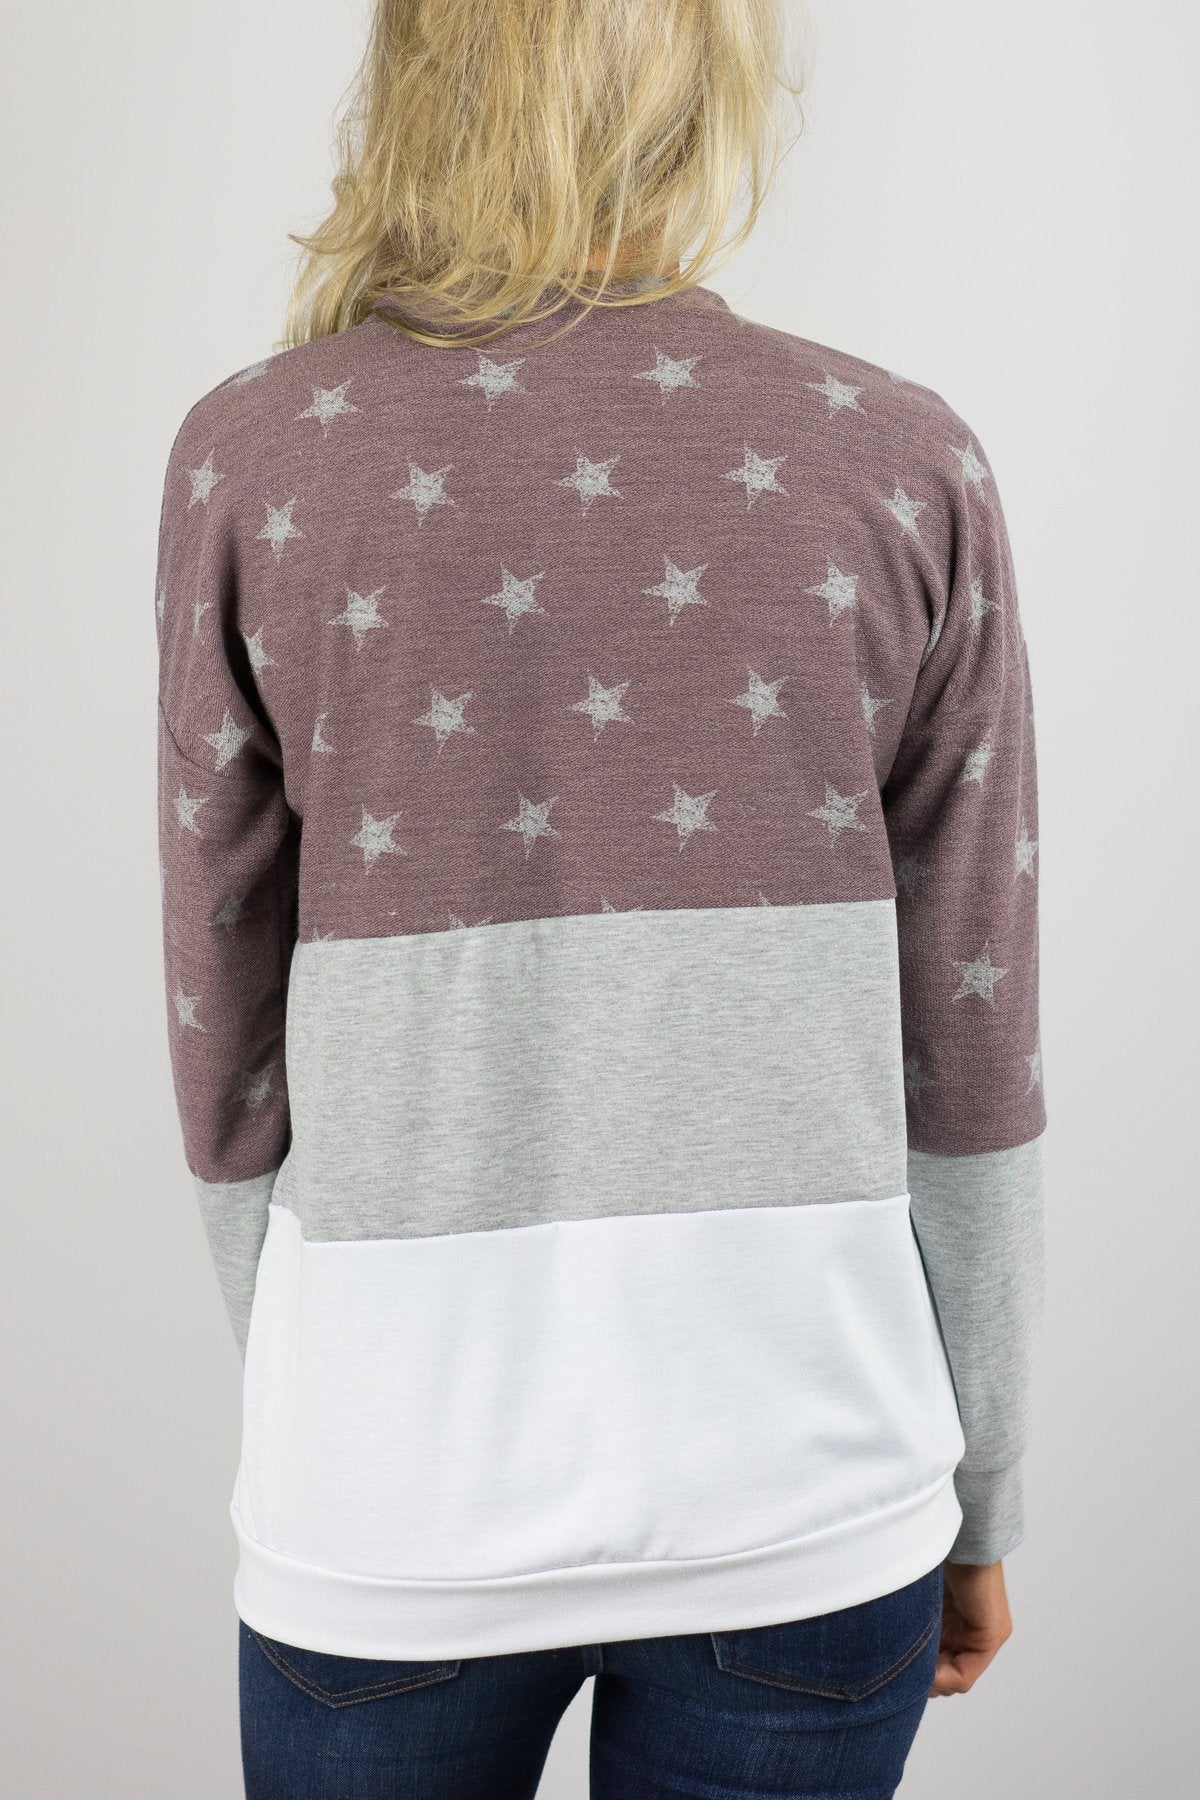 Be a Star Sweater - Rusty Red